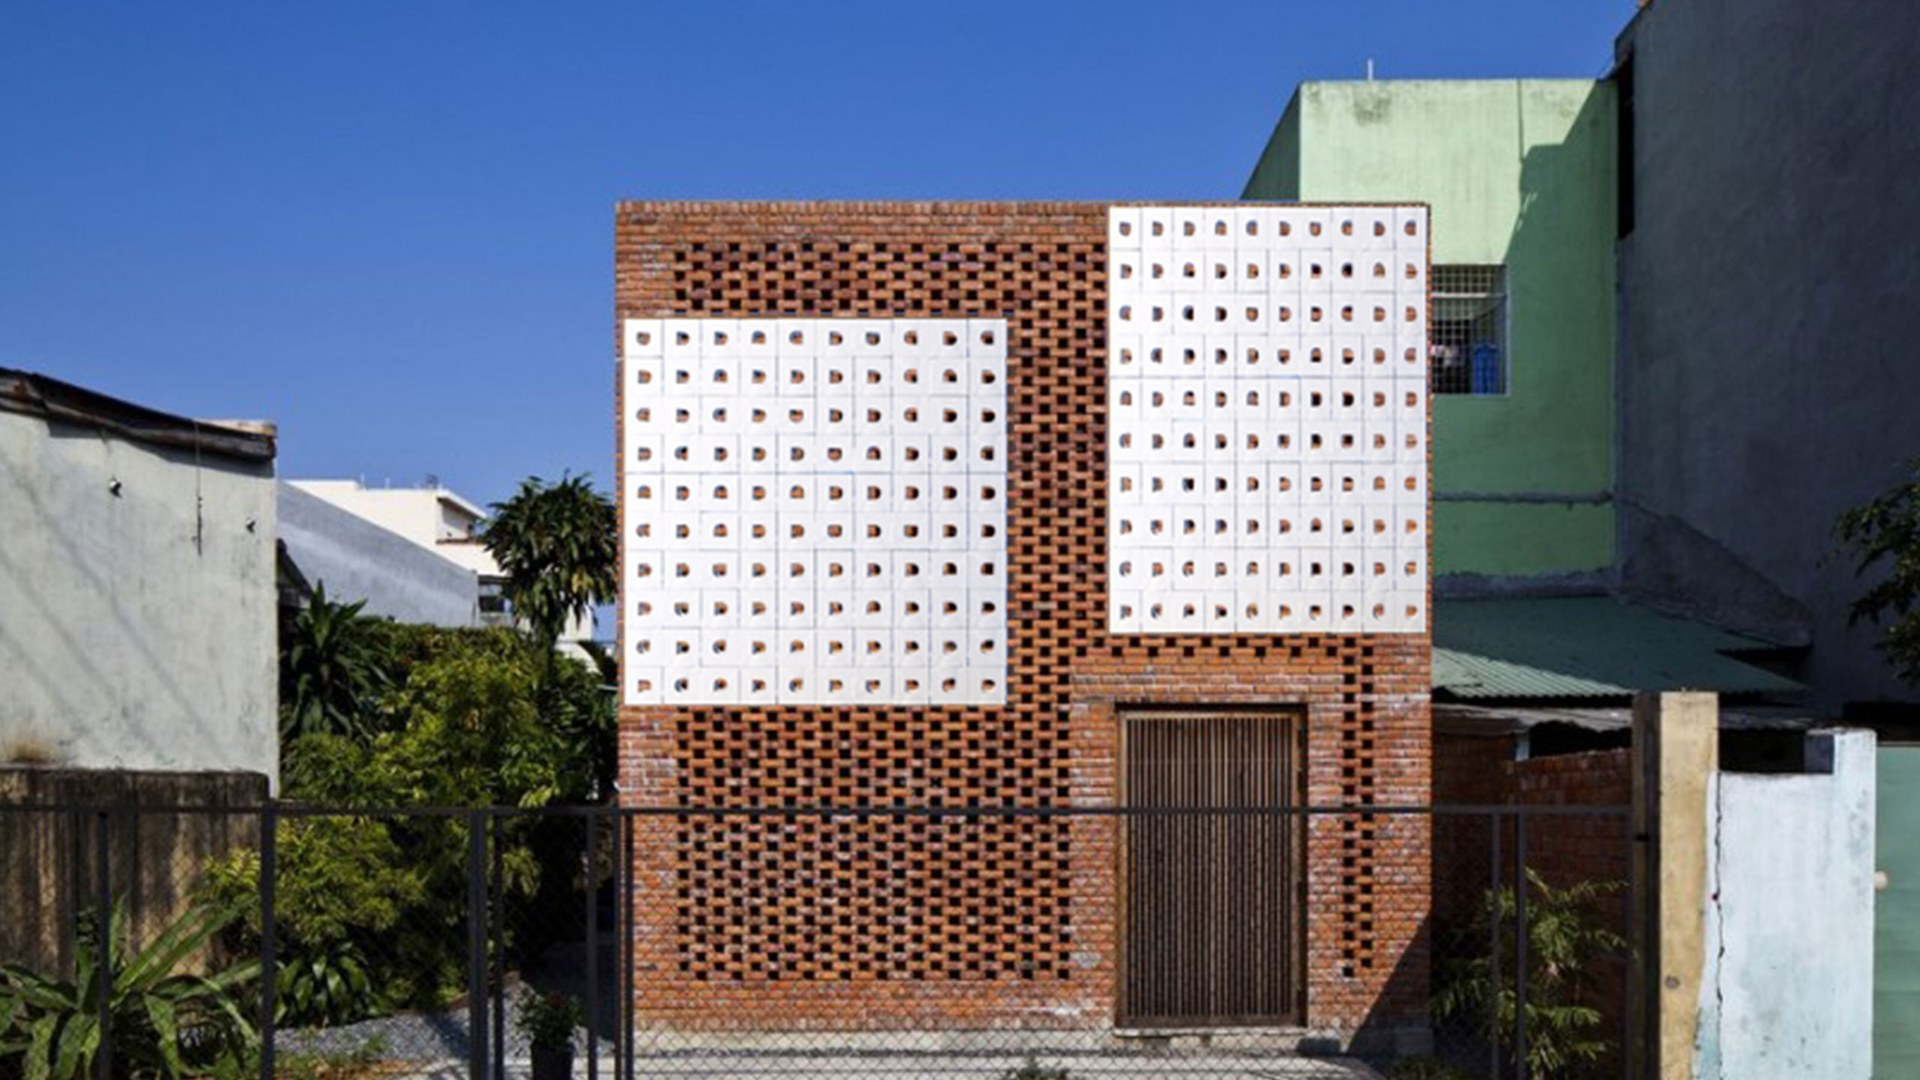 Antonym Passive Cooling Tiles on Building Facade